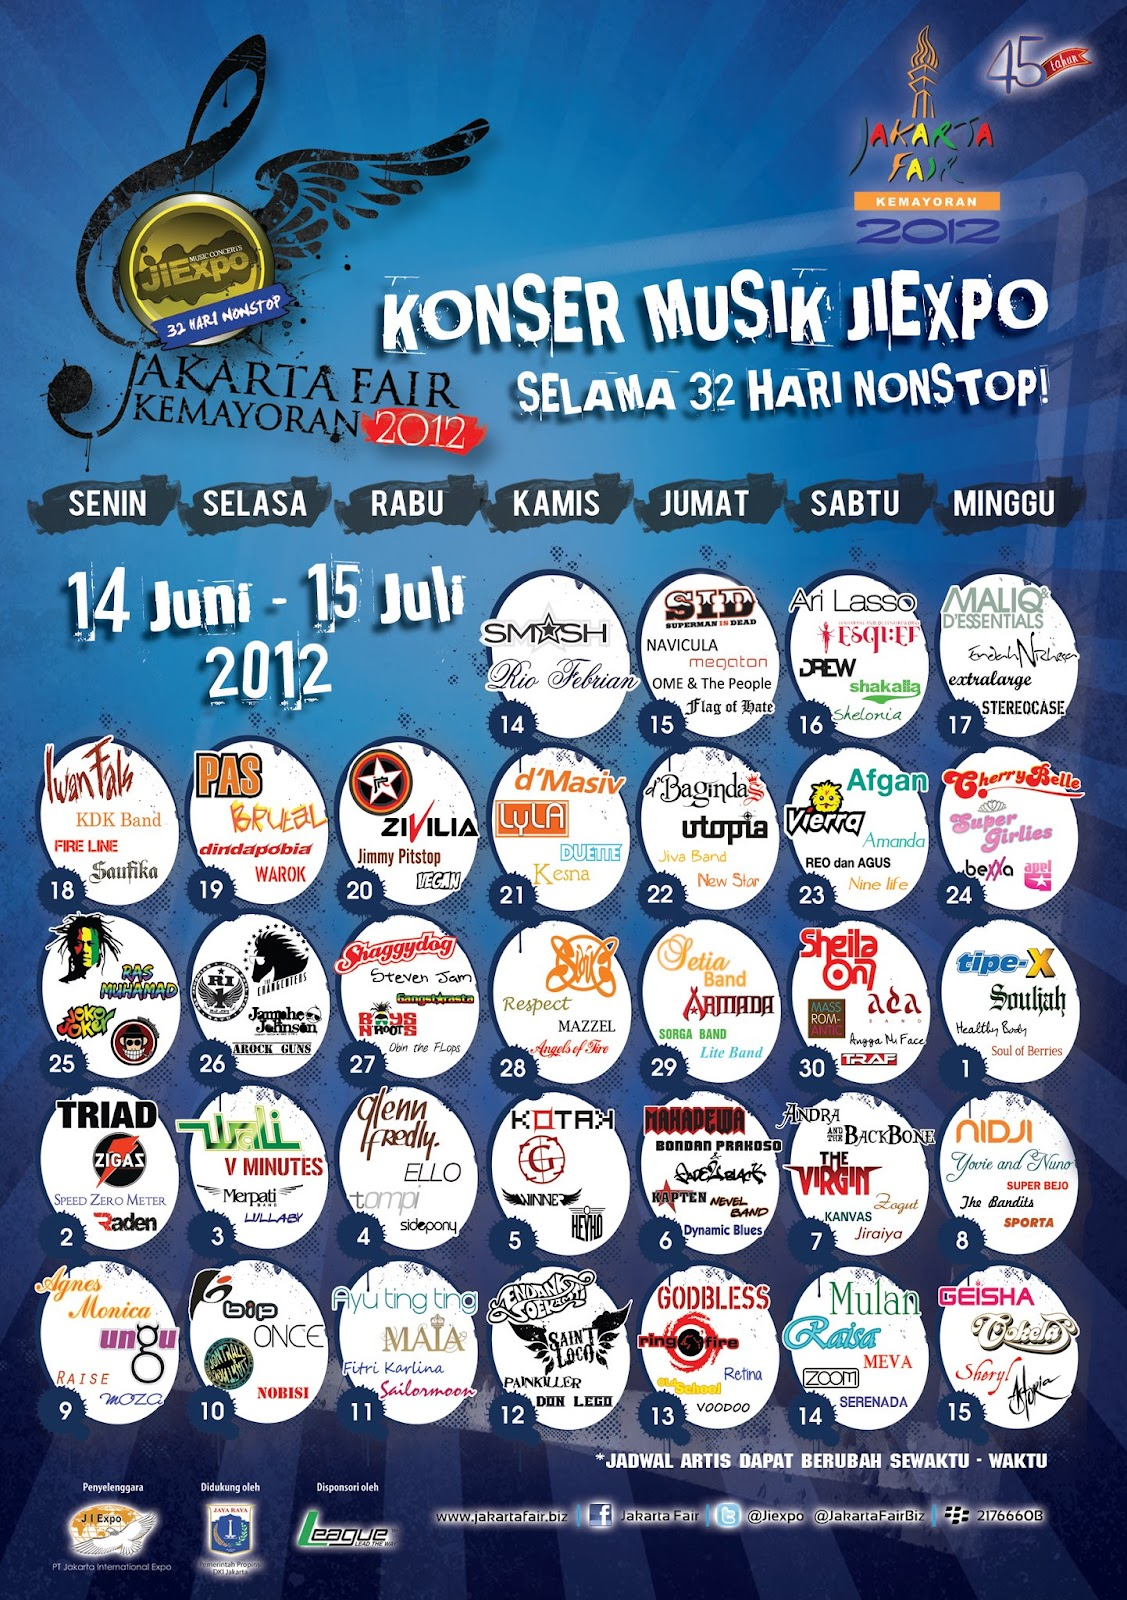 Jadwal Konser Musik PRJ 2012